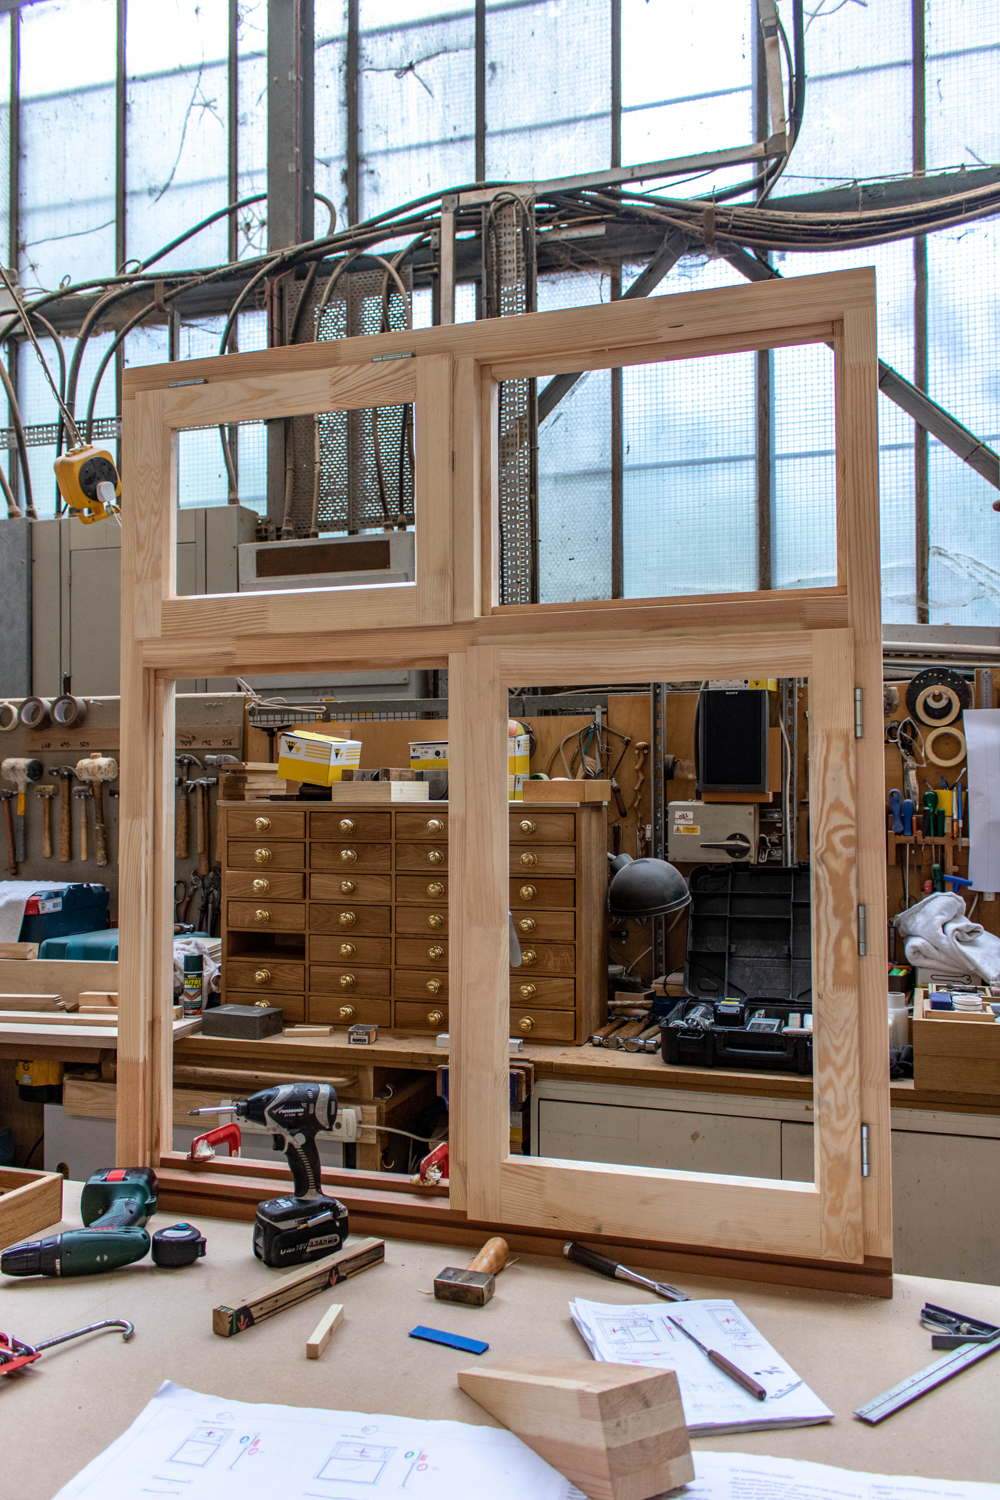 wood window frames being constructed in joinery workshop